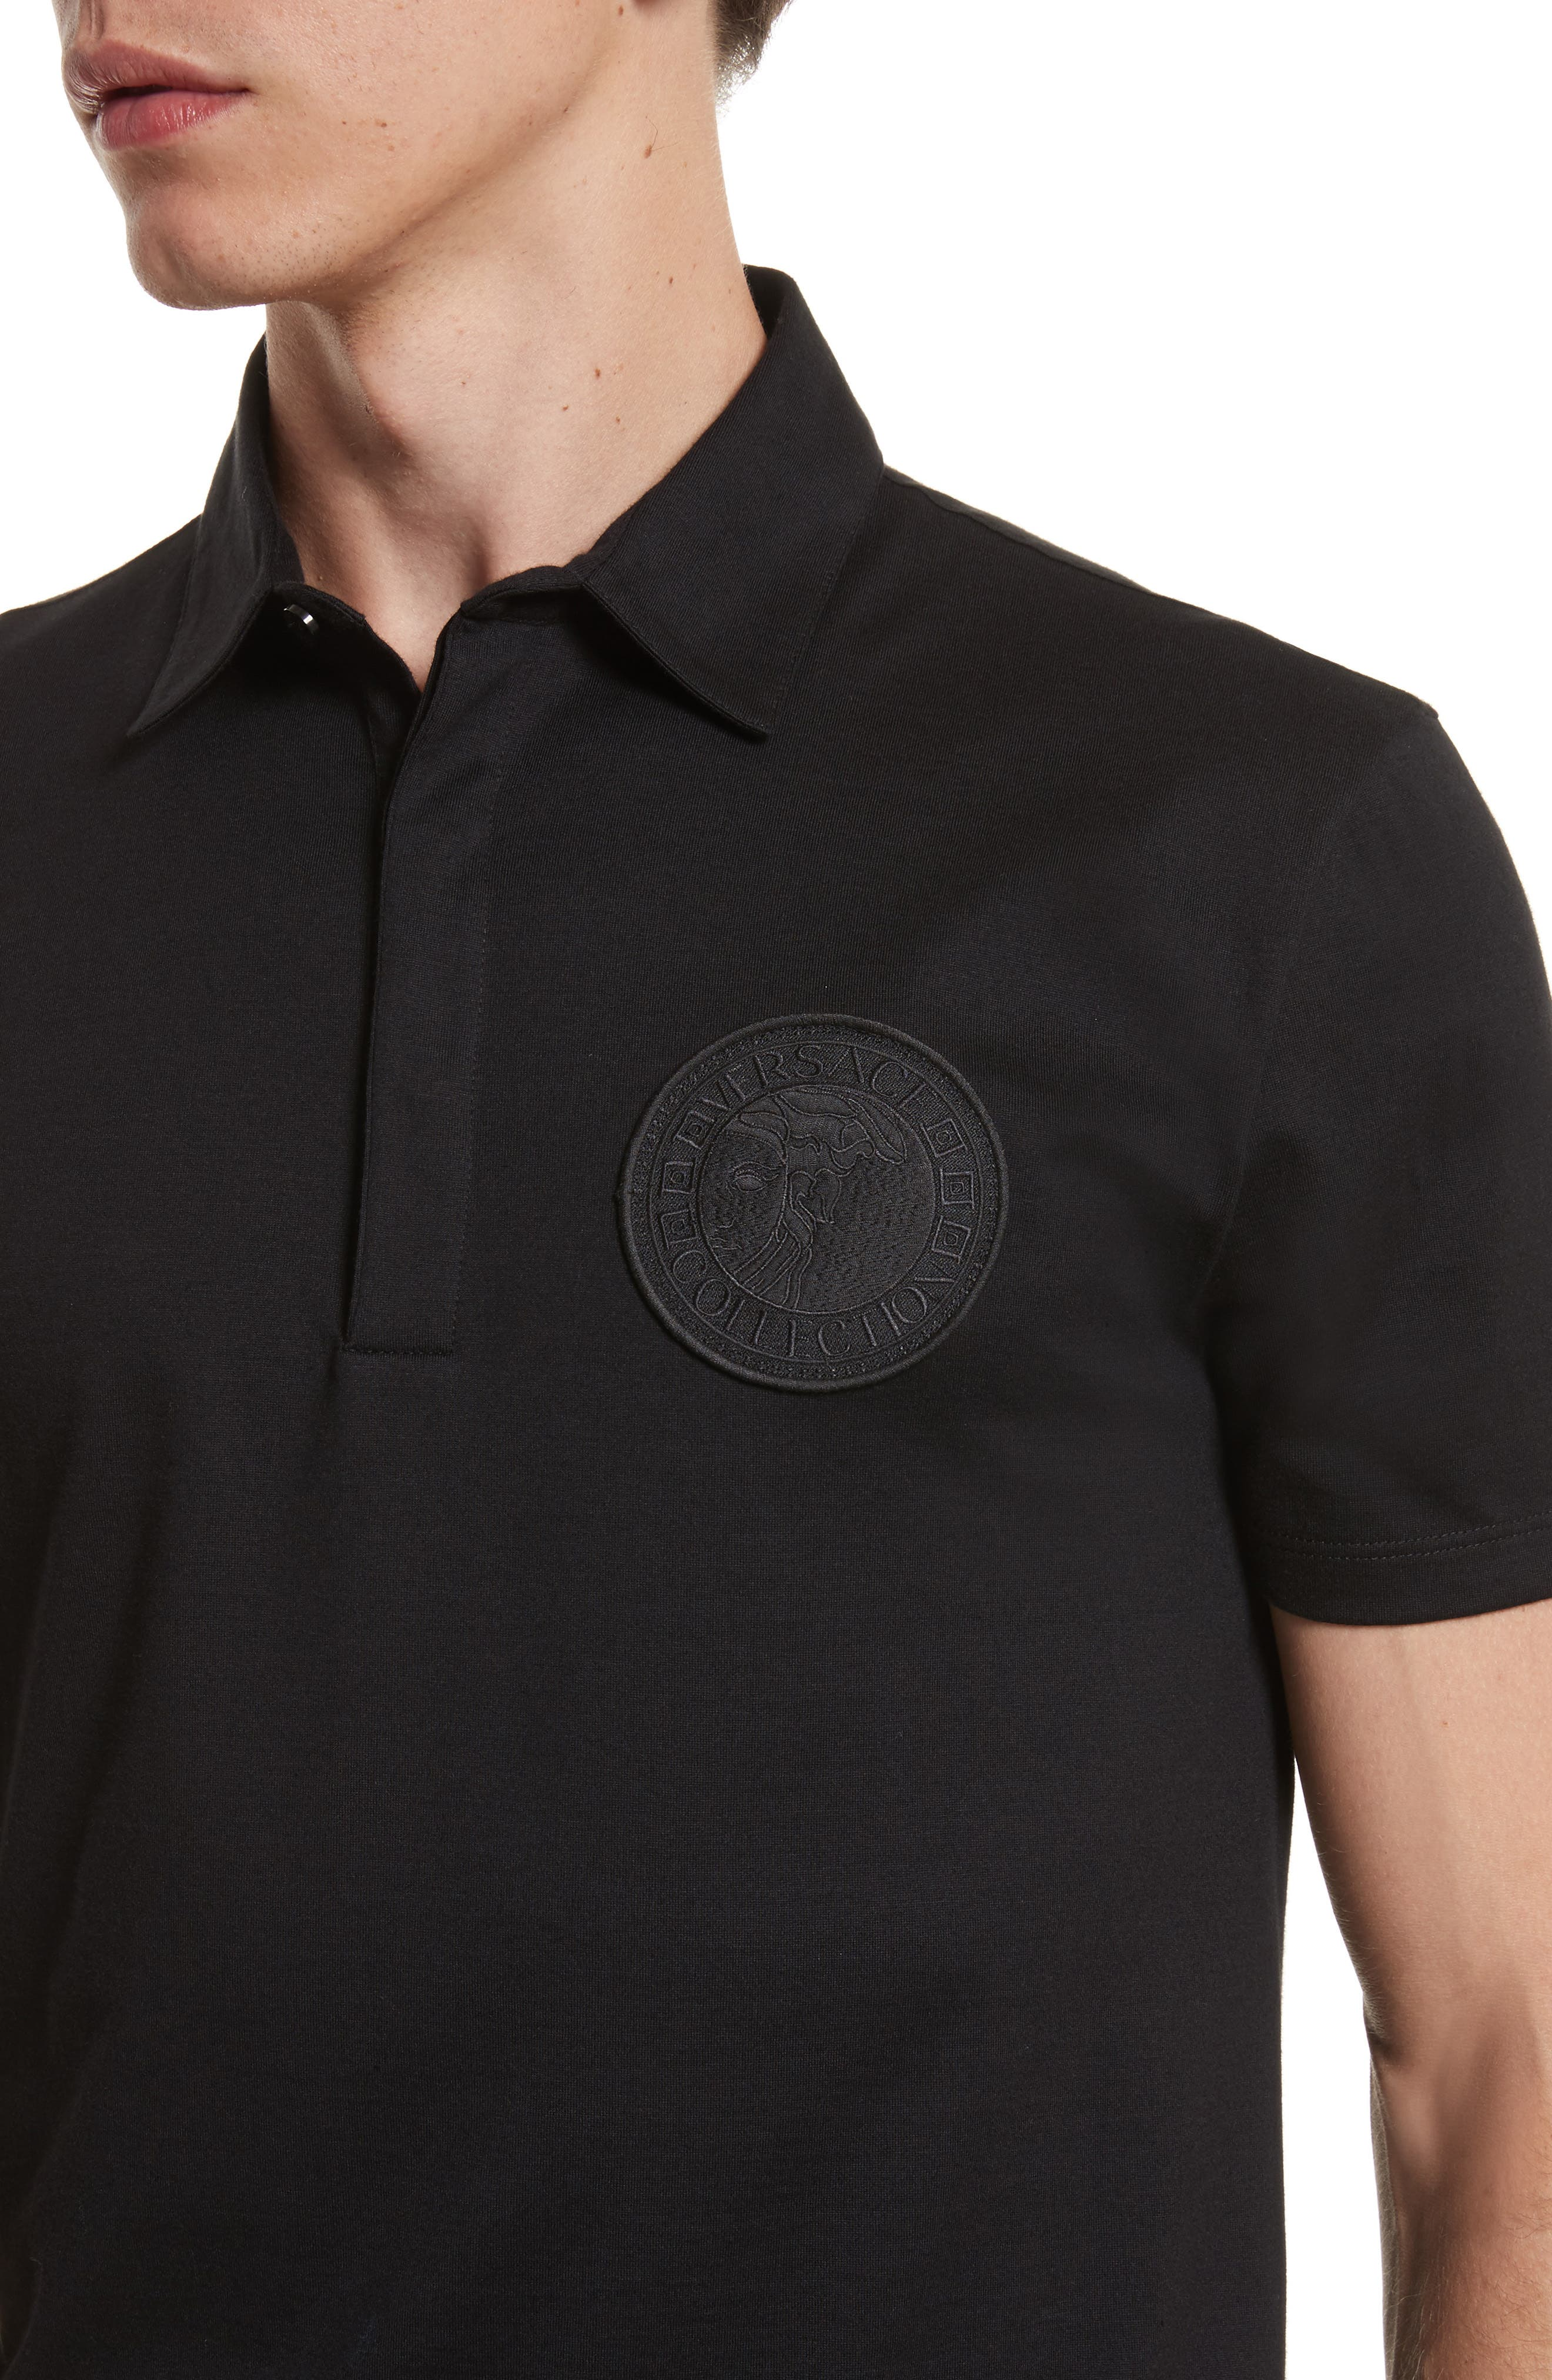 VERSACE COLLECTION, Logo Patch Jersey Polo, Alternate thumbnail 4, color, 001